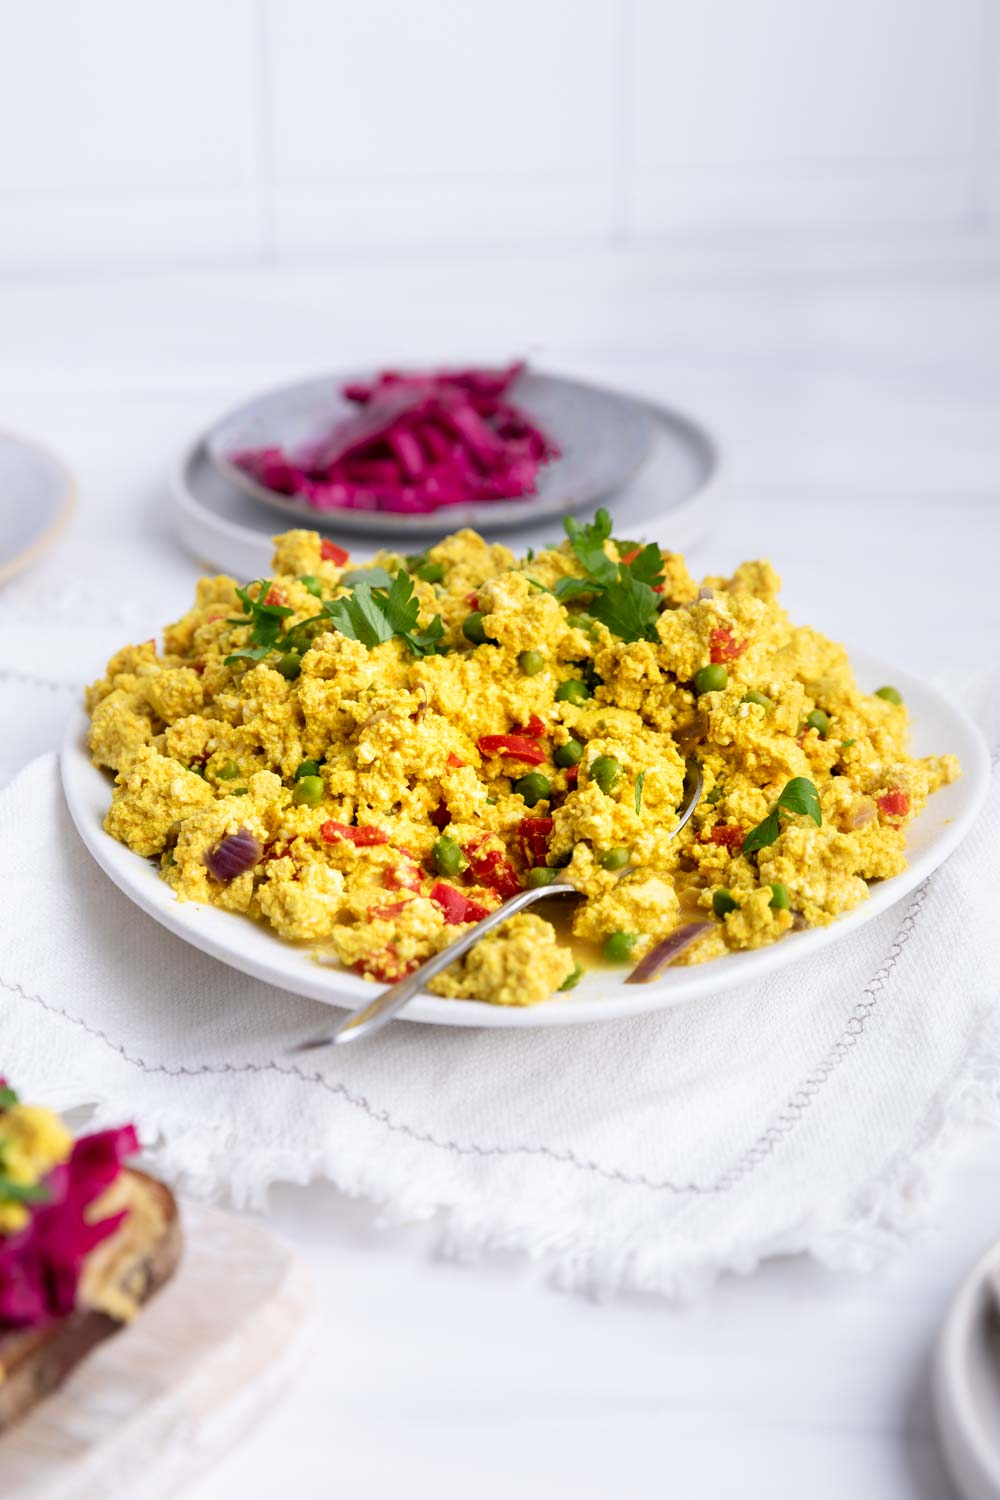 The best vegan scrambled tofu eggs on a white plate garnished with fresh parsley with a spoon and pickled red cabbage in the back.